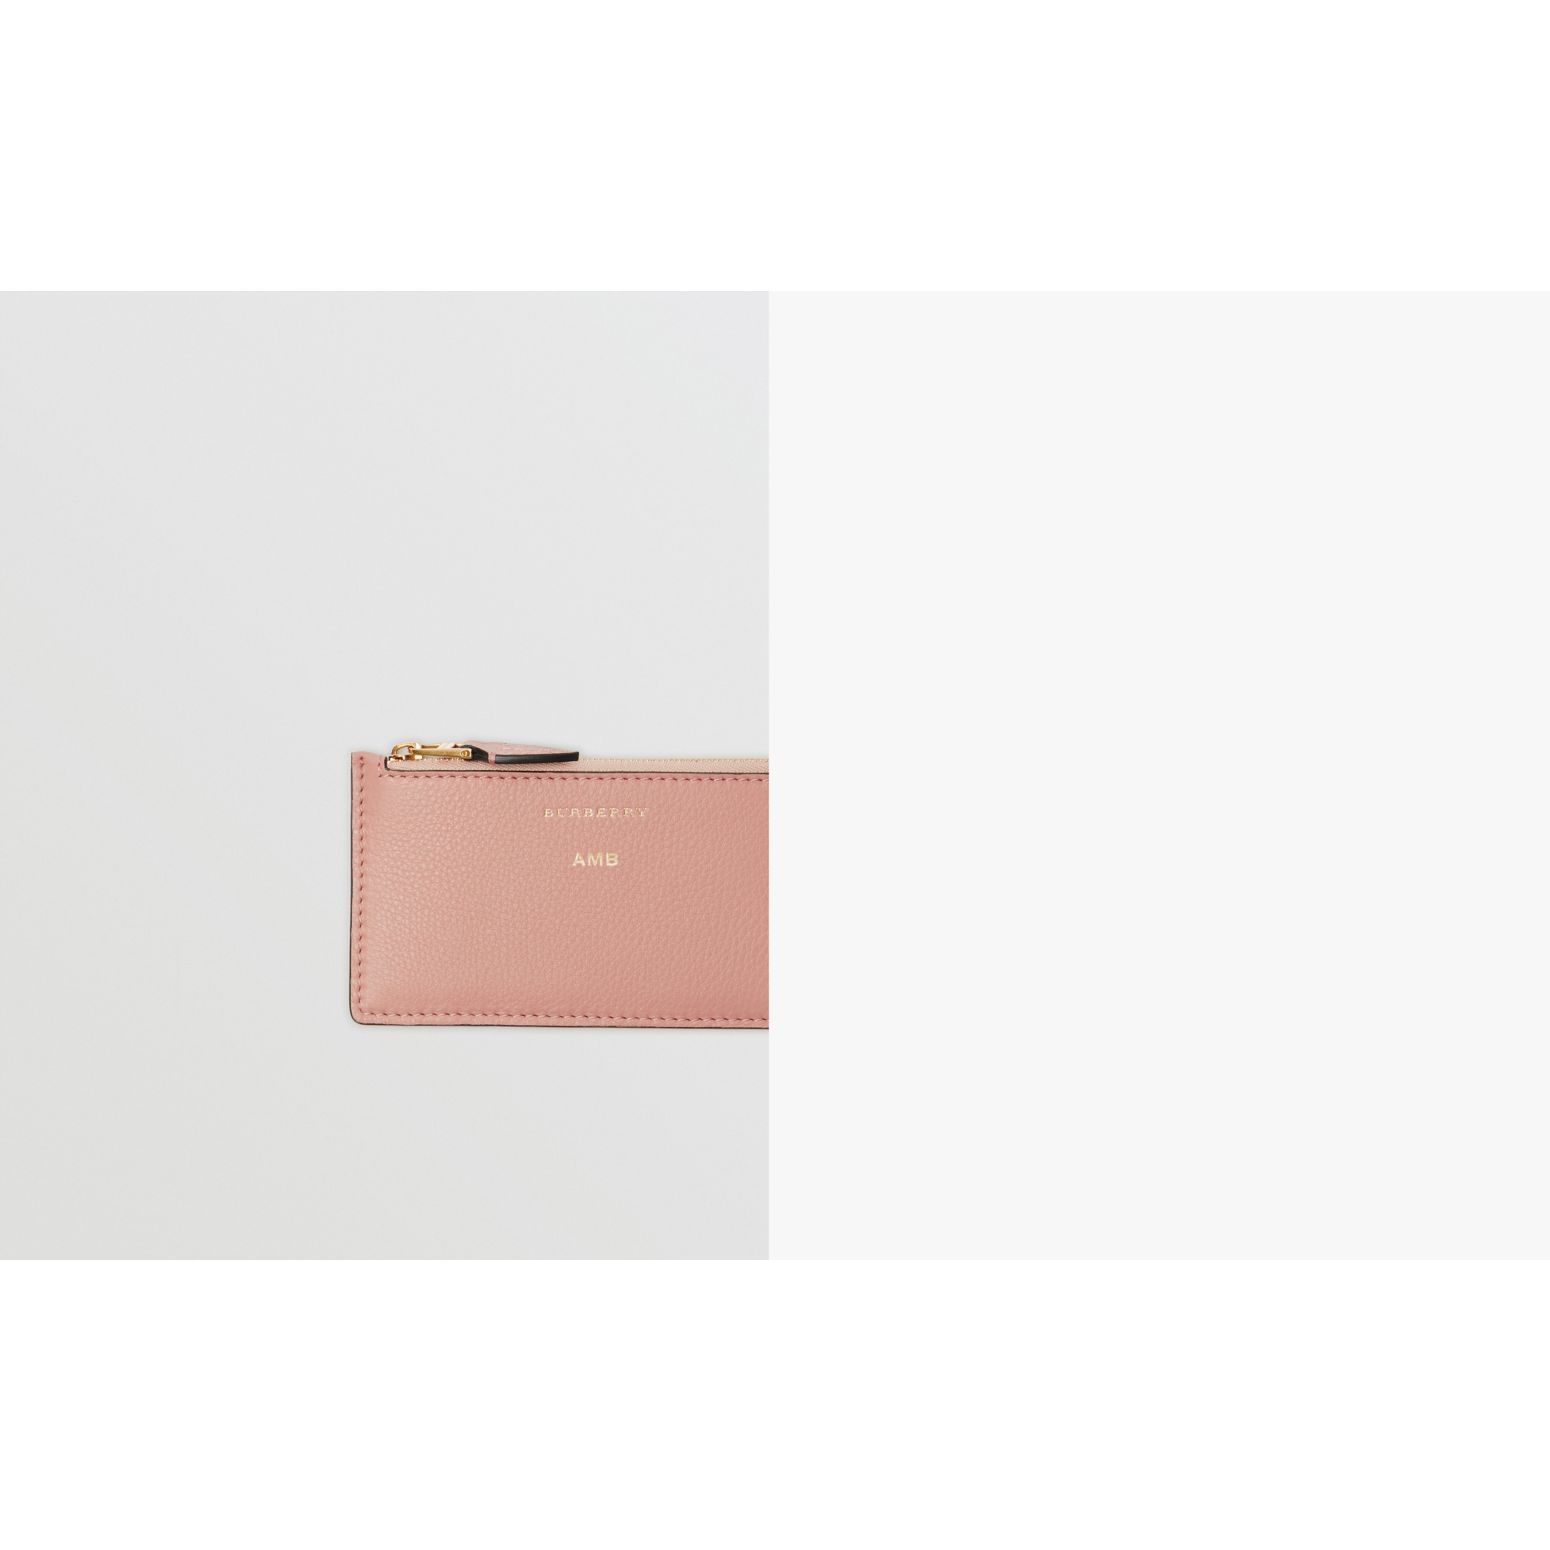 Two-tone Leather Zip Card Case in Ash Rose - Women | Burberry Australia - gallery image 1